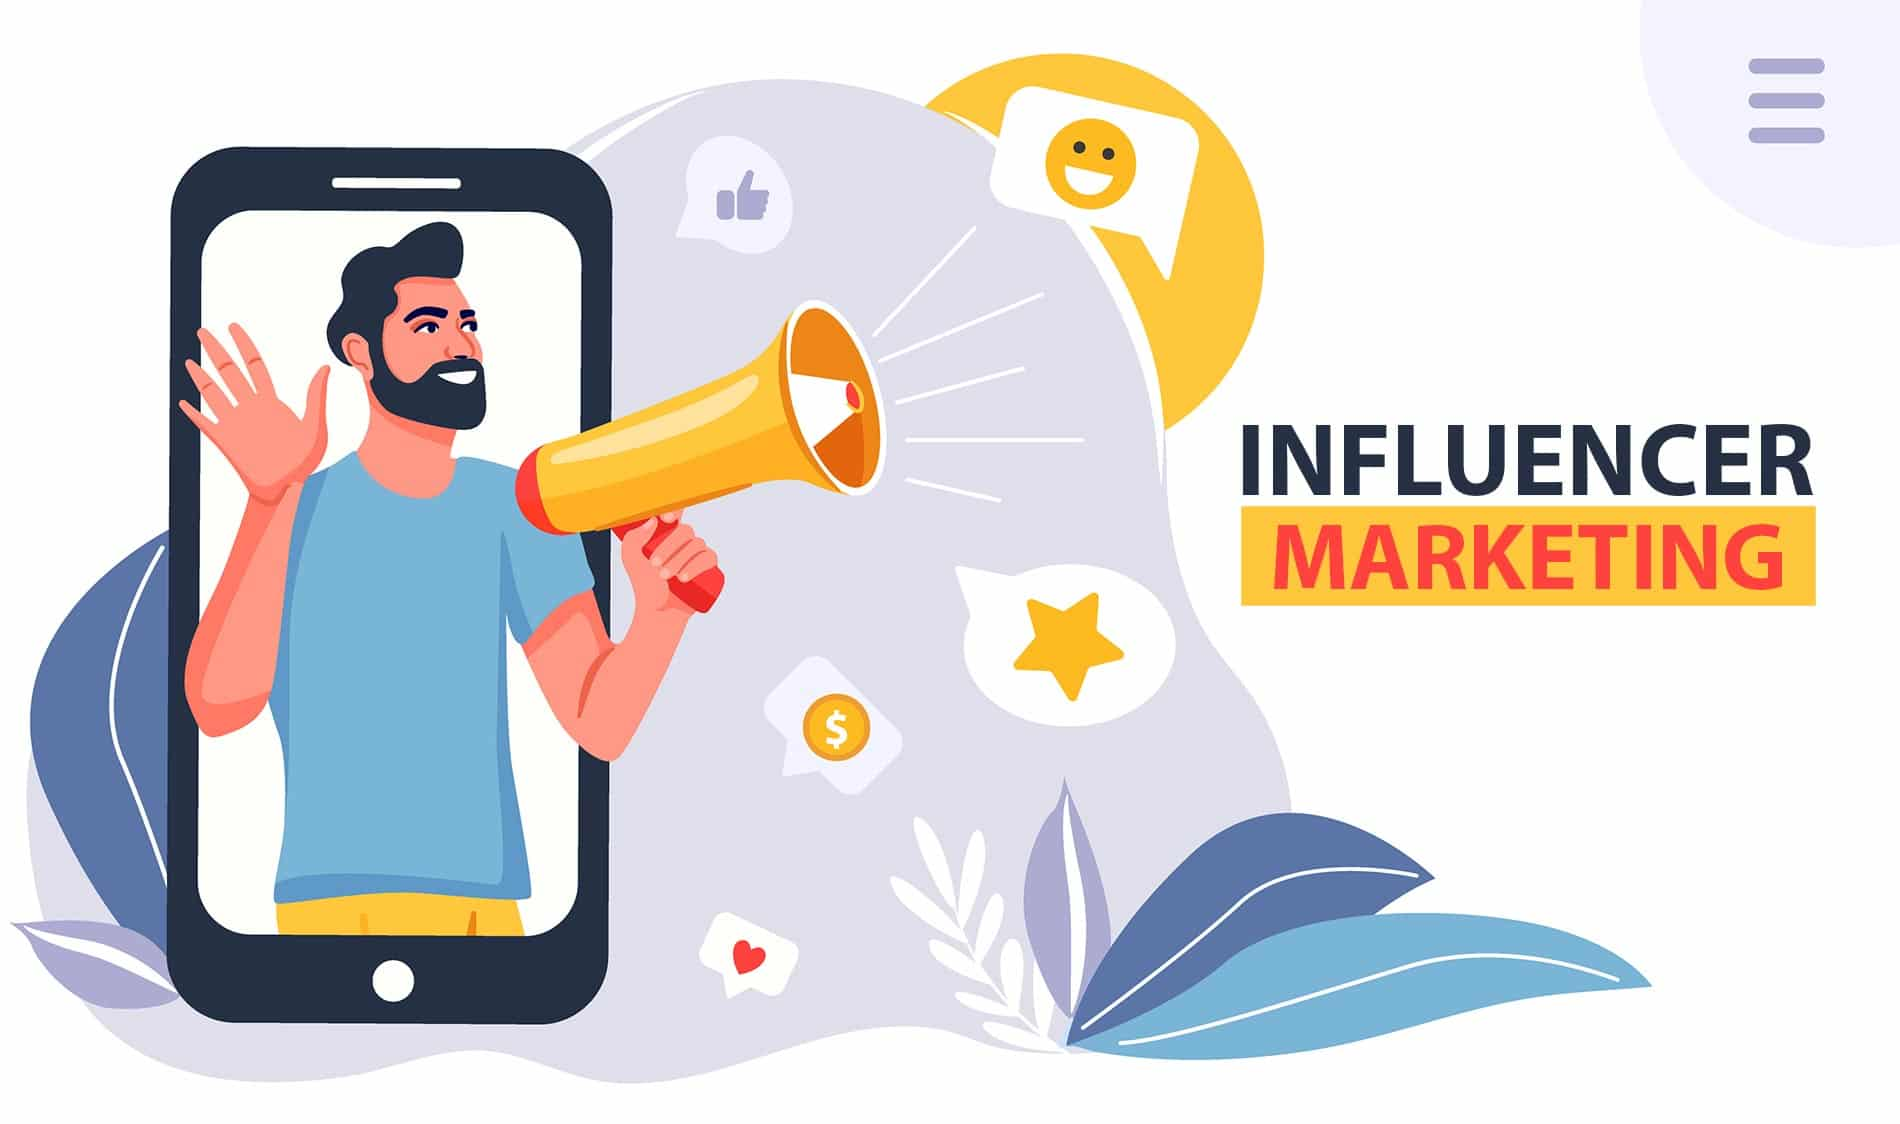 Influencer Marketing: Definition, Guide, Benefits, and Strategy